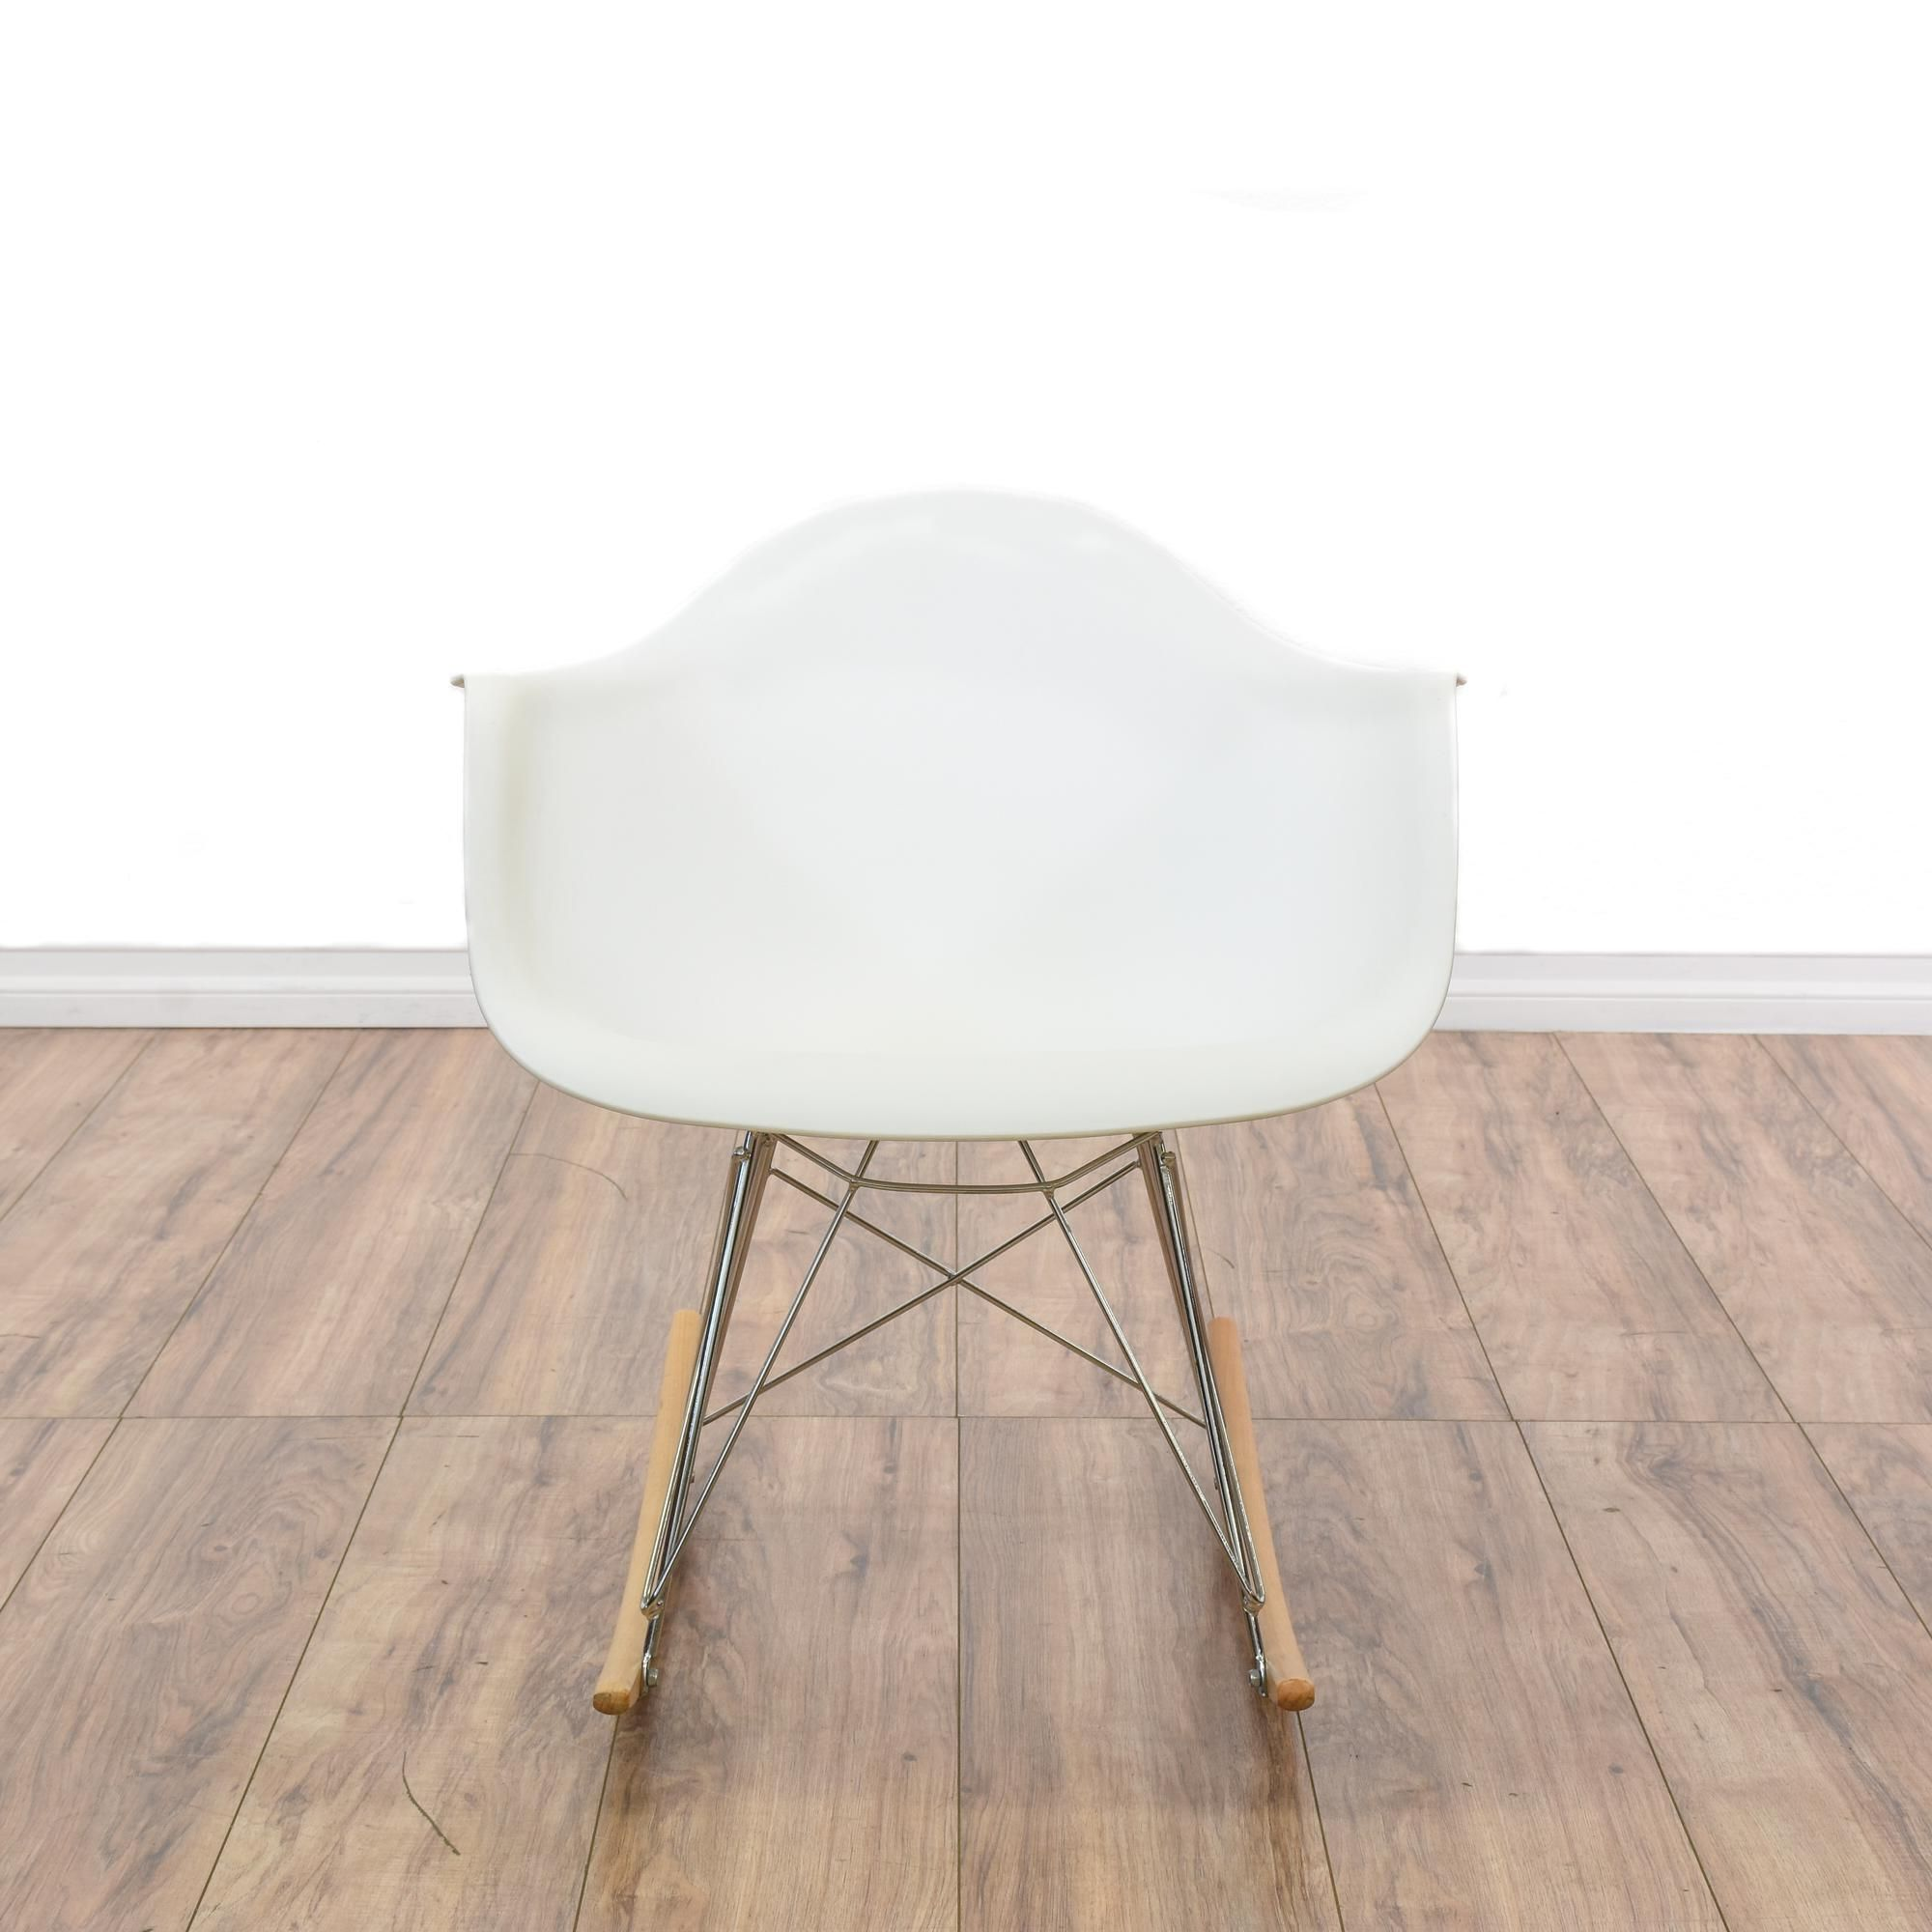 This Eames Style Rocking Chair Is Featured In A Durable White Molded  Plastic. This Mid Century Modern Style Replica Has Chromed Metal Support  Bars, ...